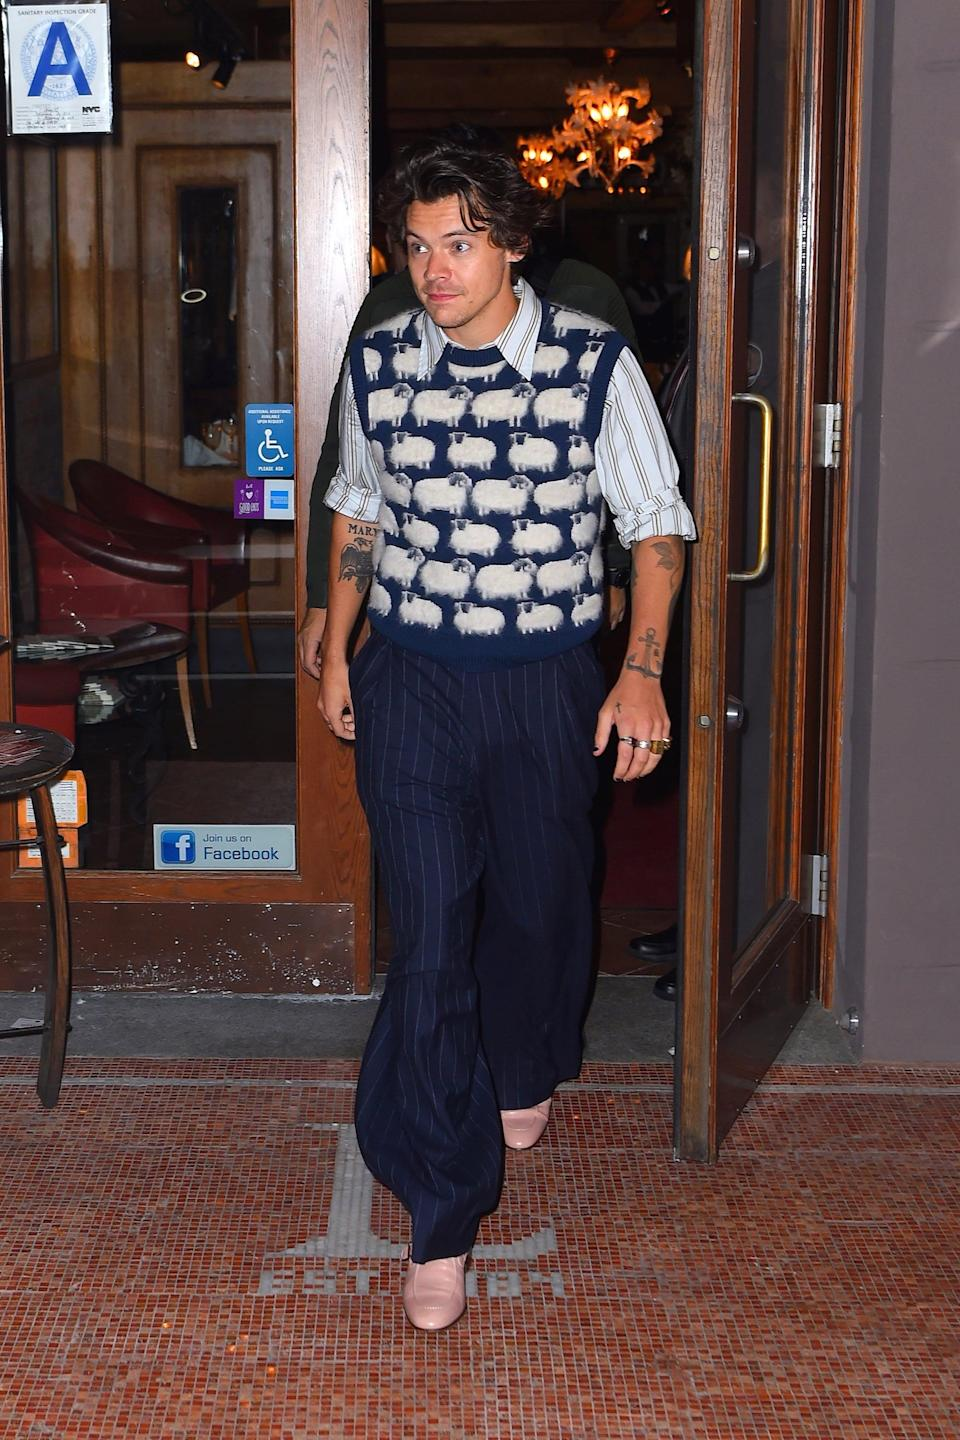 """<p>The internet essentially shattered into a zillion pieces when Harry stepped out in <a href=""""https://www.popsugar.com/fashion/harry-styles-sheep-print-sweater-vest-46900381"""" class=""""link rapid-noclick-resp"""" rel=""""nofollow noopener"""" target=""""_blank"""" data-ylk=""""slk:this endearing sheep print sweater vest by Lanvin"""">this endearing sheep print sweater vest by Lanvin</a> in November 2019. Fans instantly drew comparisons to a similarly printed sweater Princess Diana wore back in the day, and Harry chose to style his with a striped shirt, navy pants, and light-pink boots. What. A. Look.</p>"""